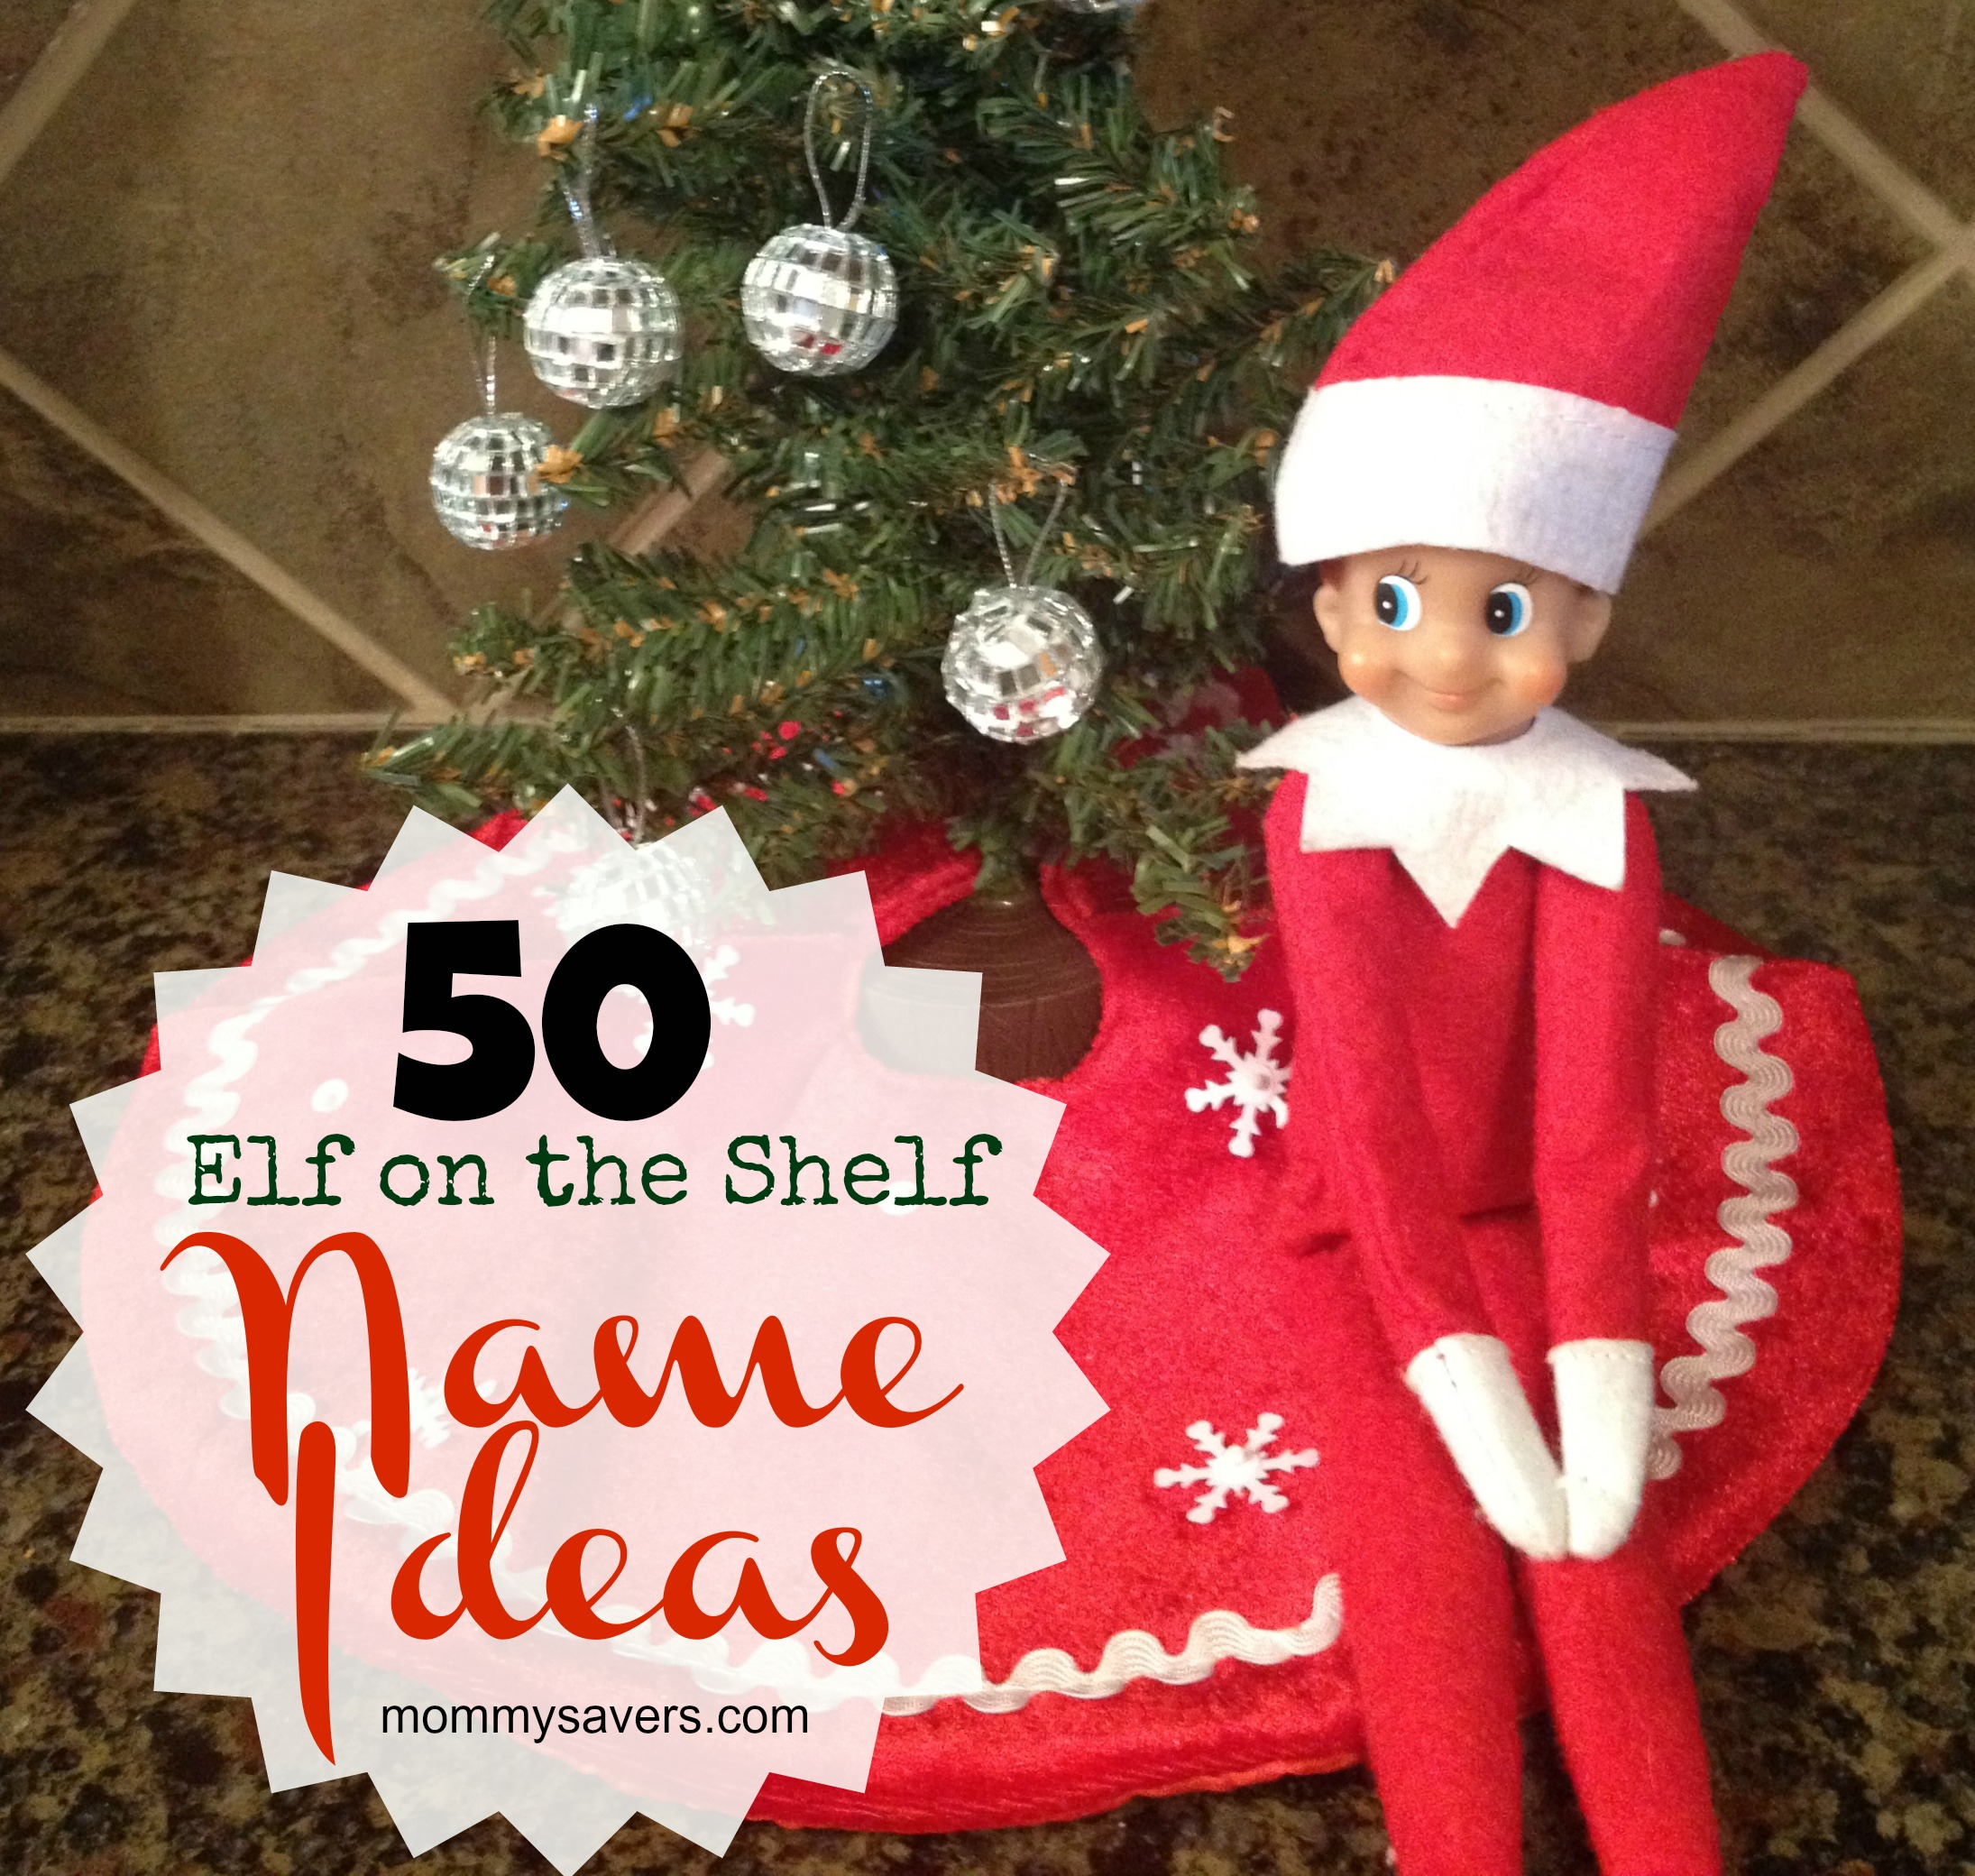 Elf On The Shelf Names 50 Ideas For Boys And Girls